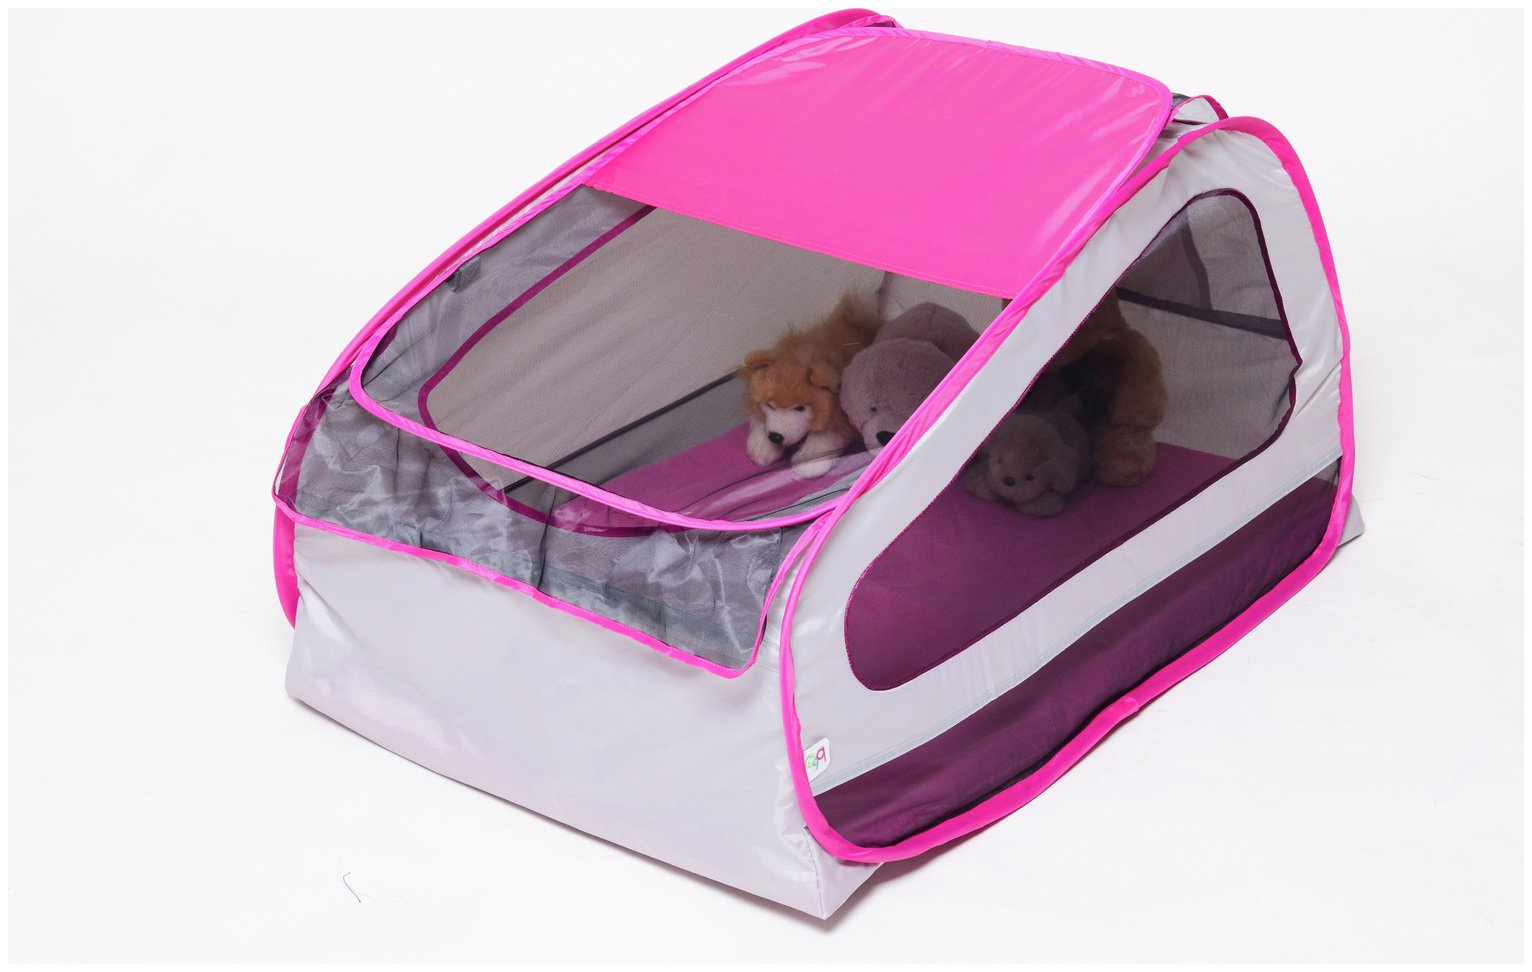 BBGG Pop Up Baby Travel Cot - Pink